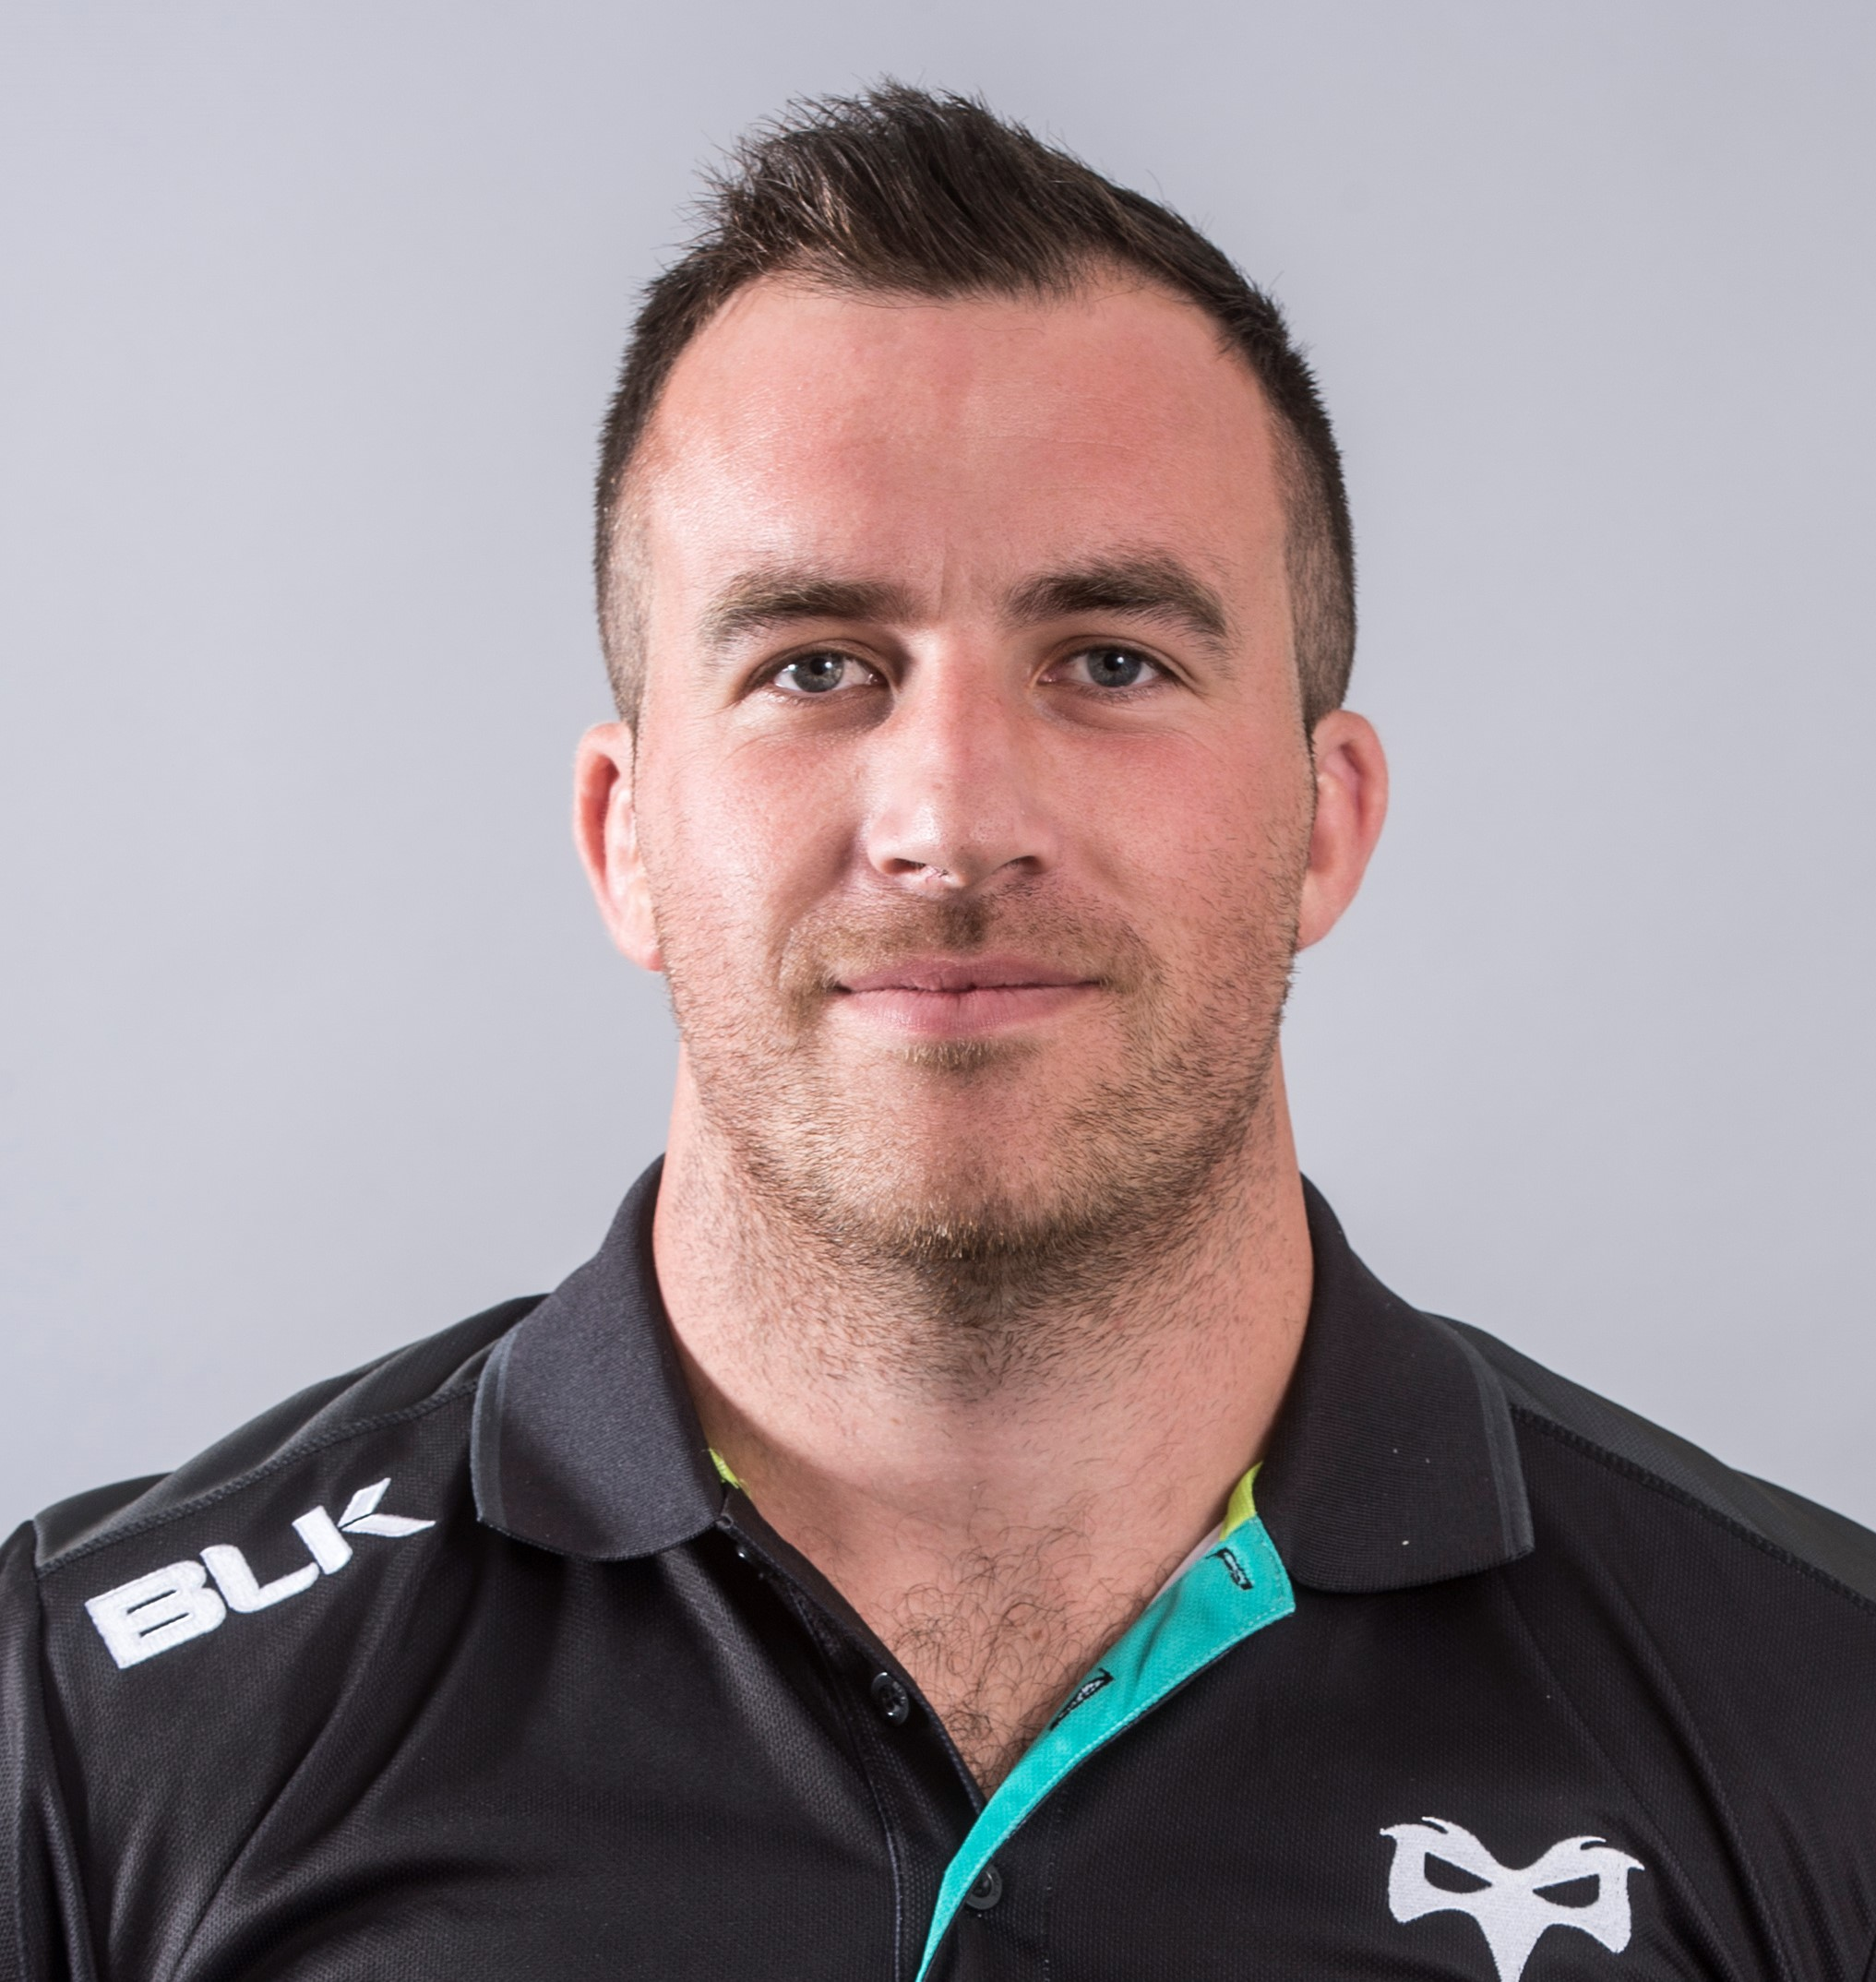 Judge Announcement: Tom Sloane of Ospreys in the Community